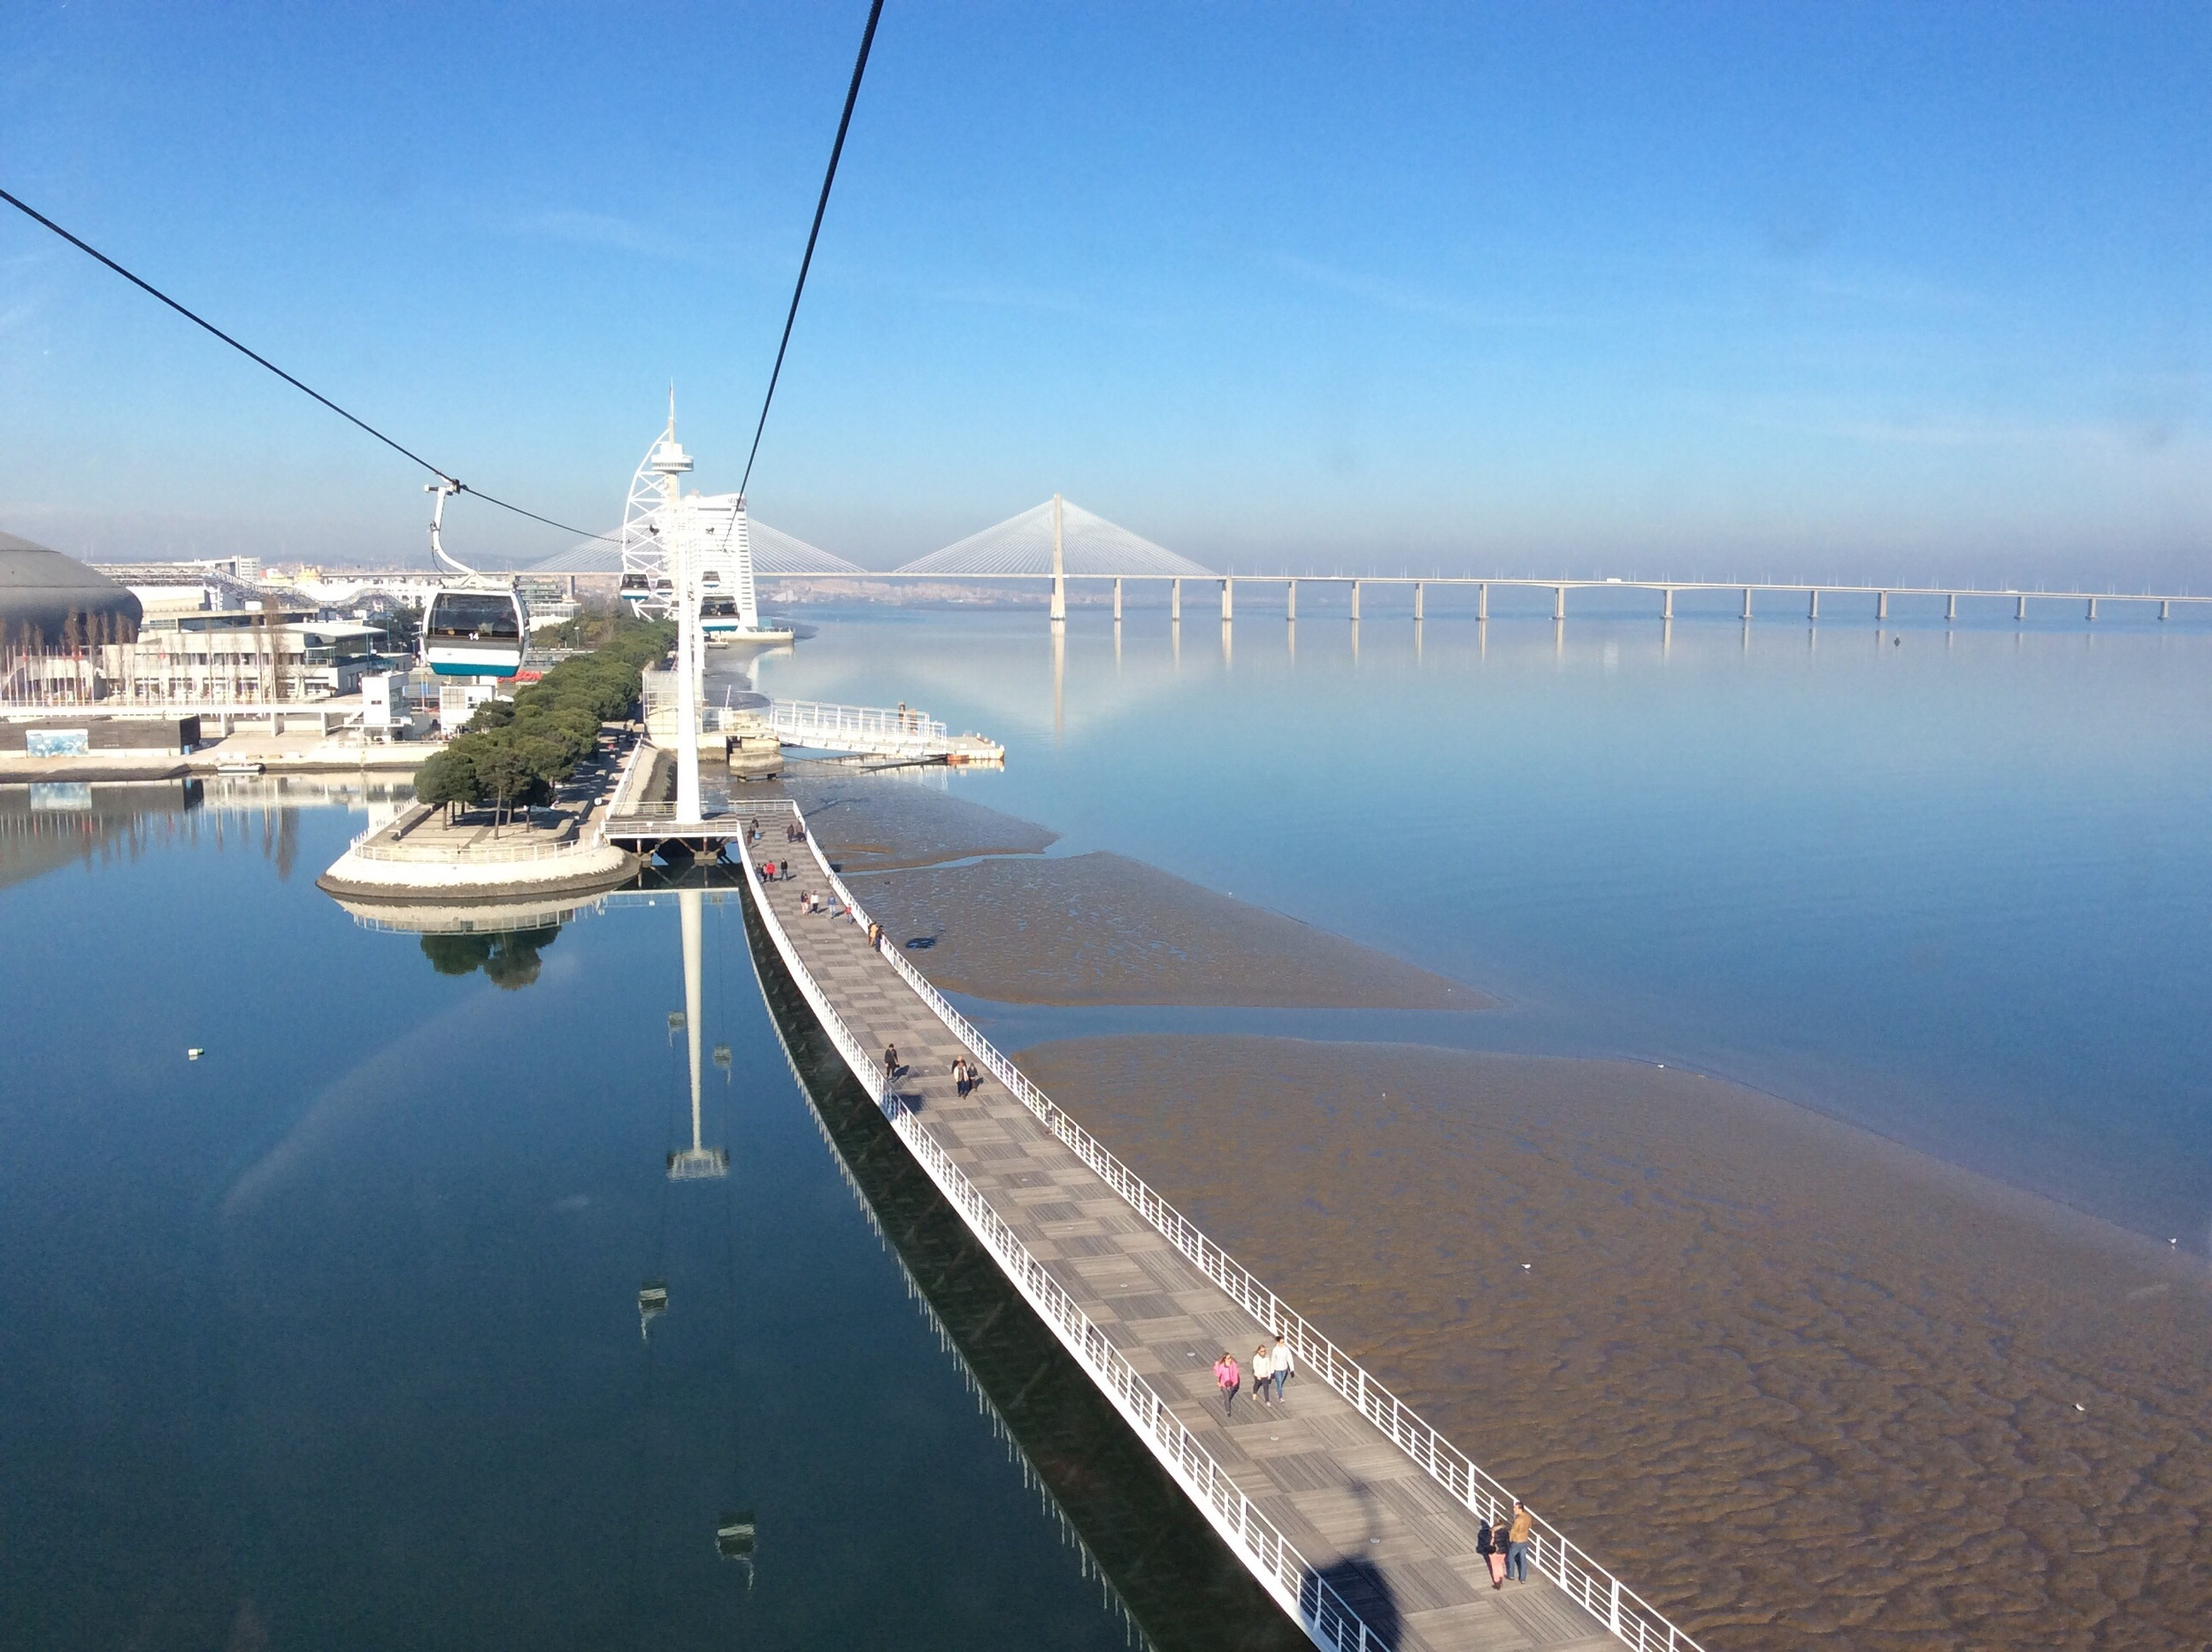 View from the cable car and view of Vasco da Gama Bridge